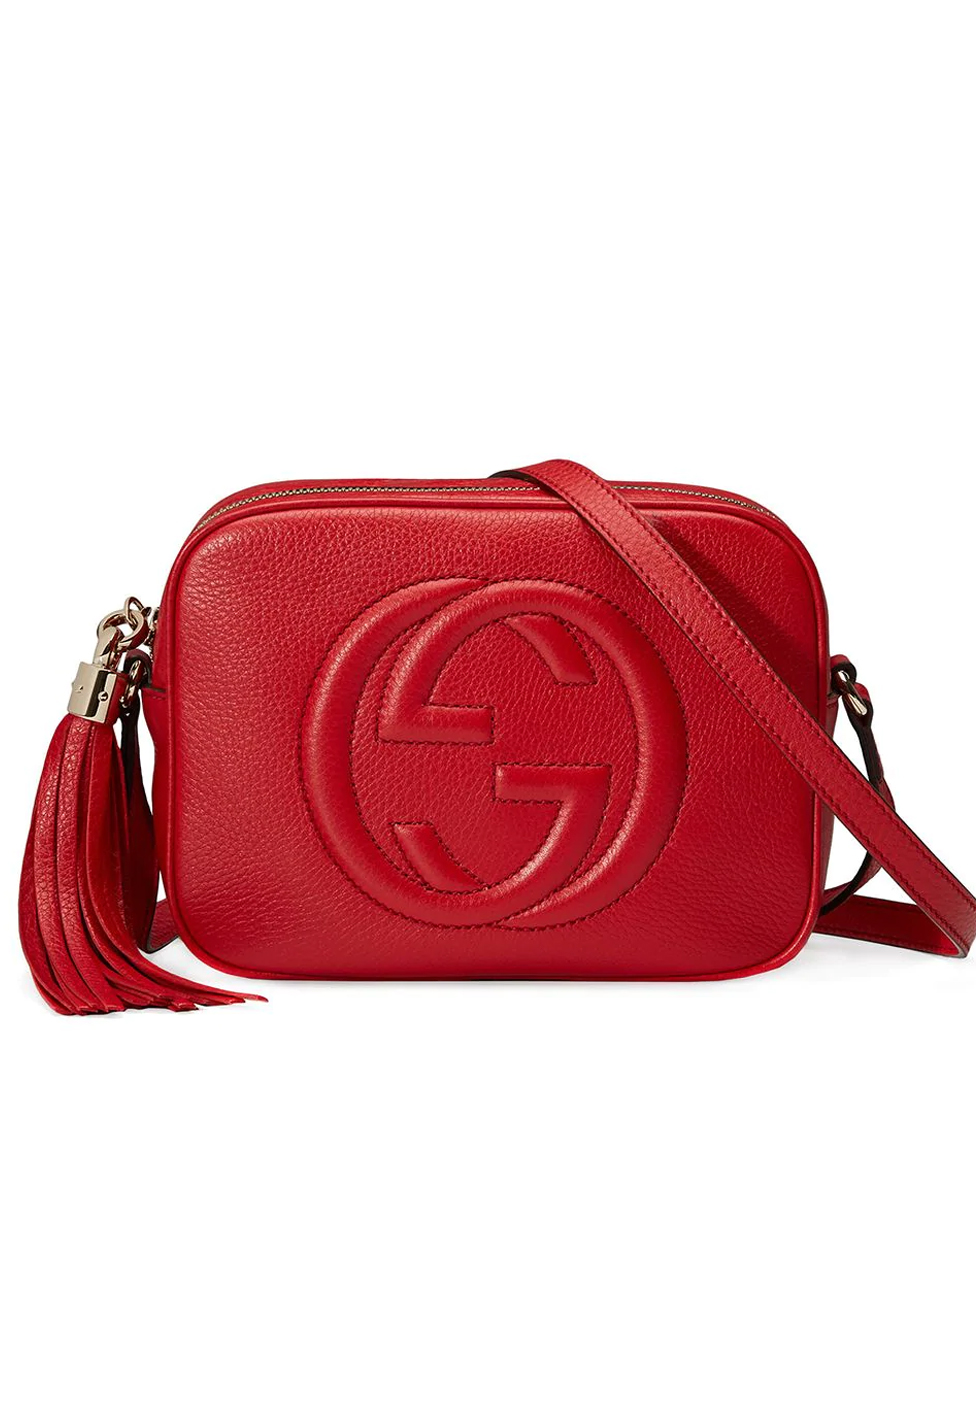 Gucci Soho disco small leather shoulder bag